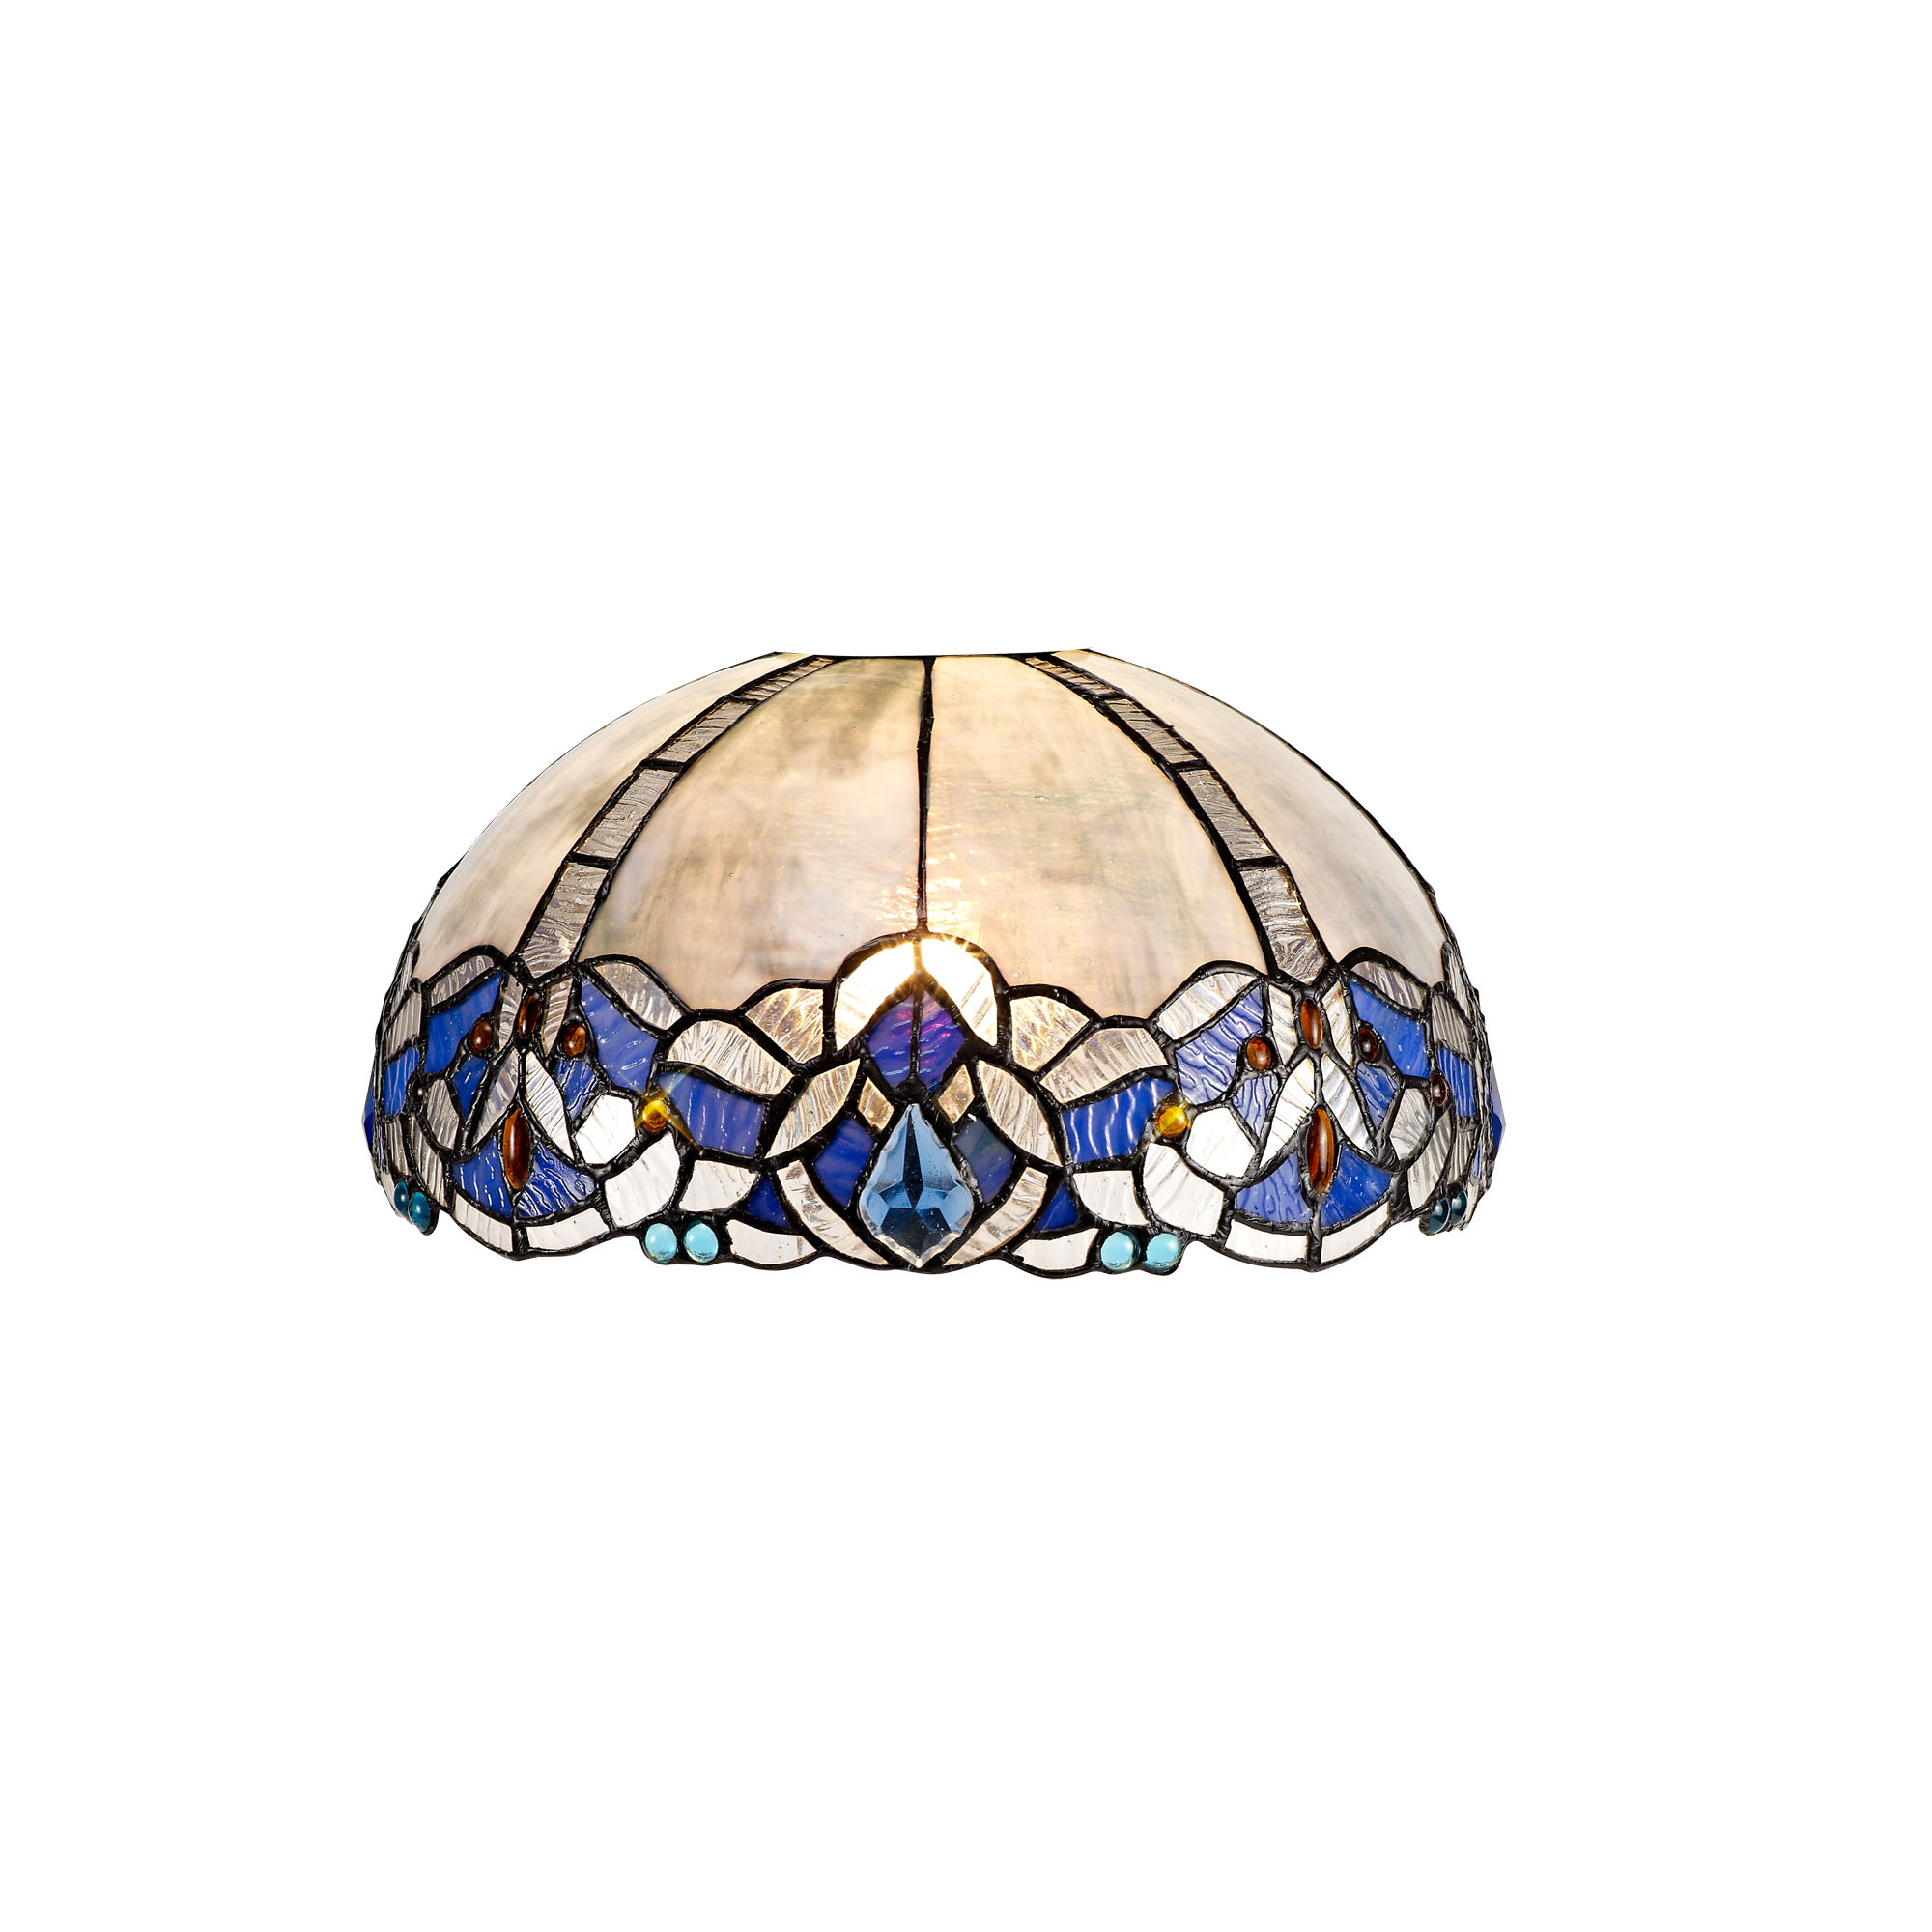 2 Light Downlight Pendant E27 With 30cm Tiffany Shade, Blue/Clear Crystal/Aged Antique Brass